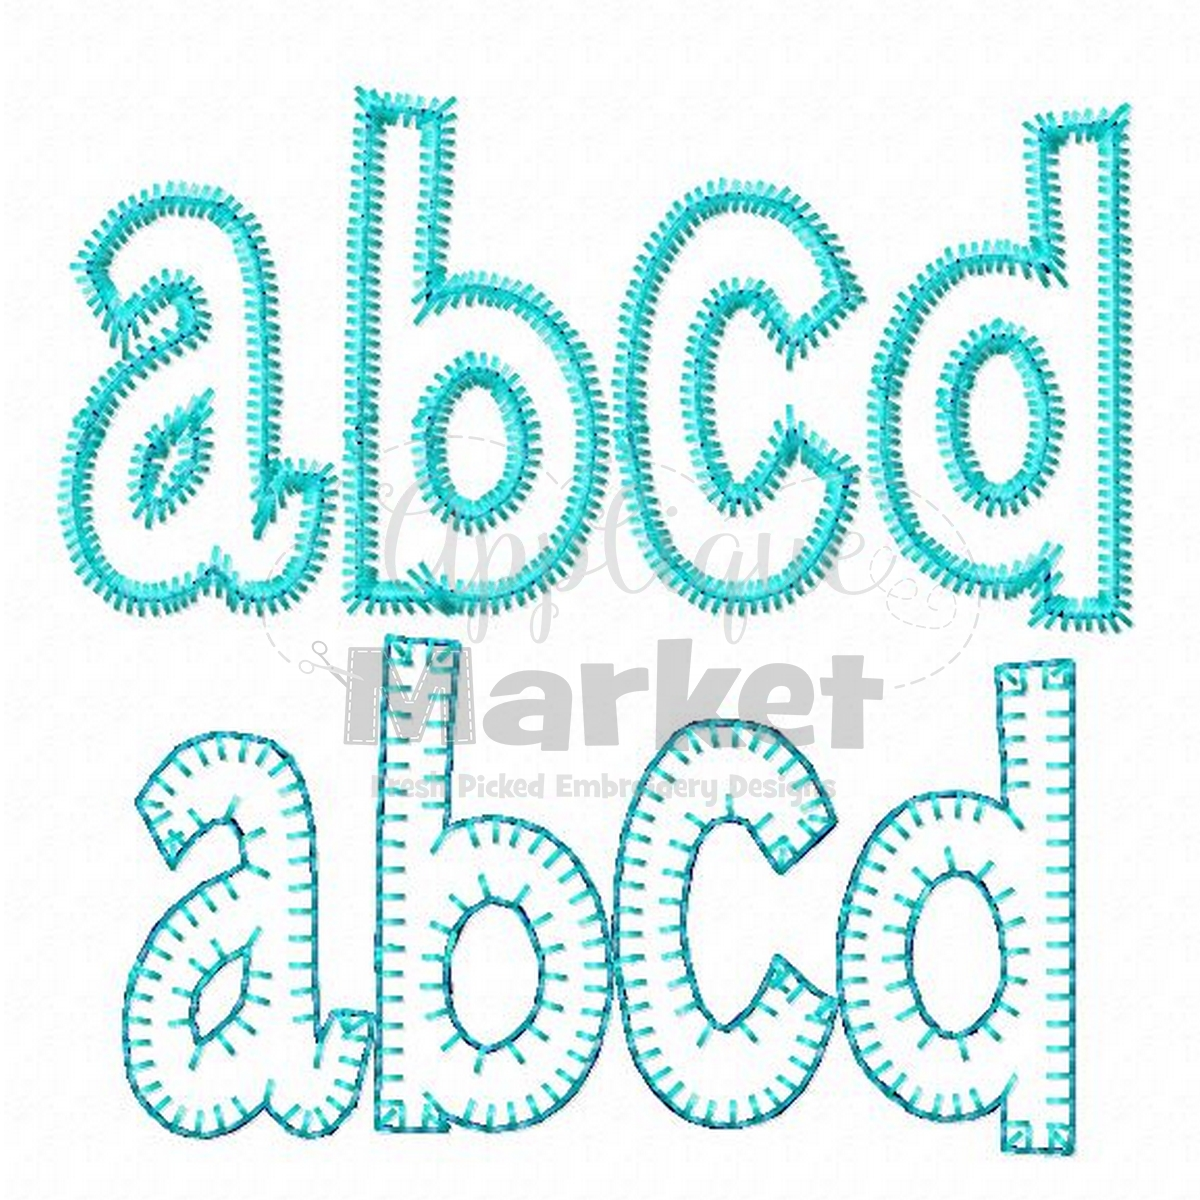 Applique Henry Applique Alphabet Applique Design